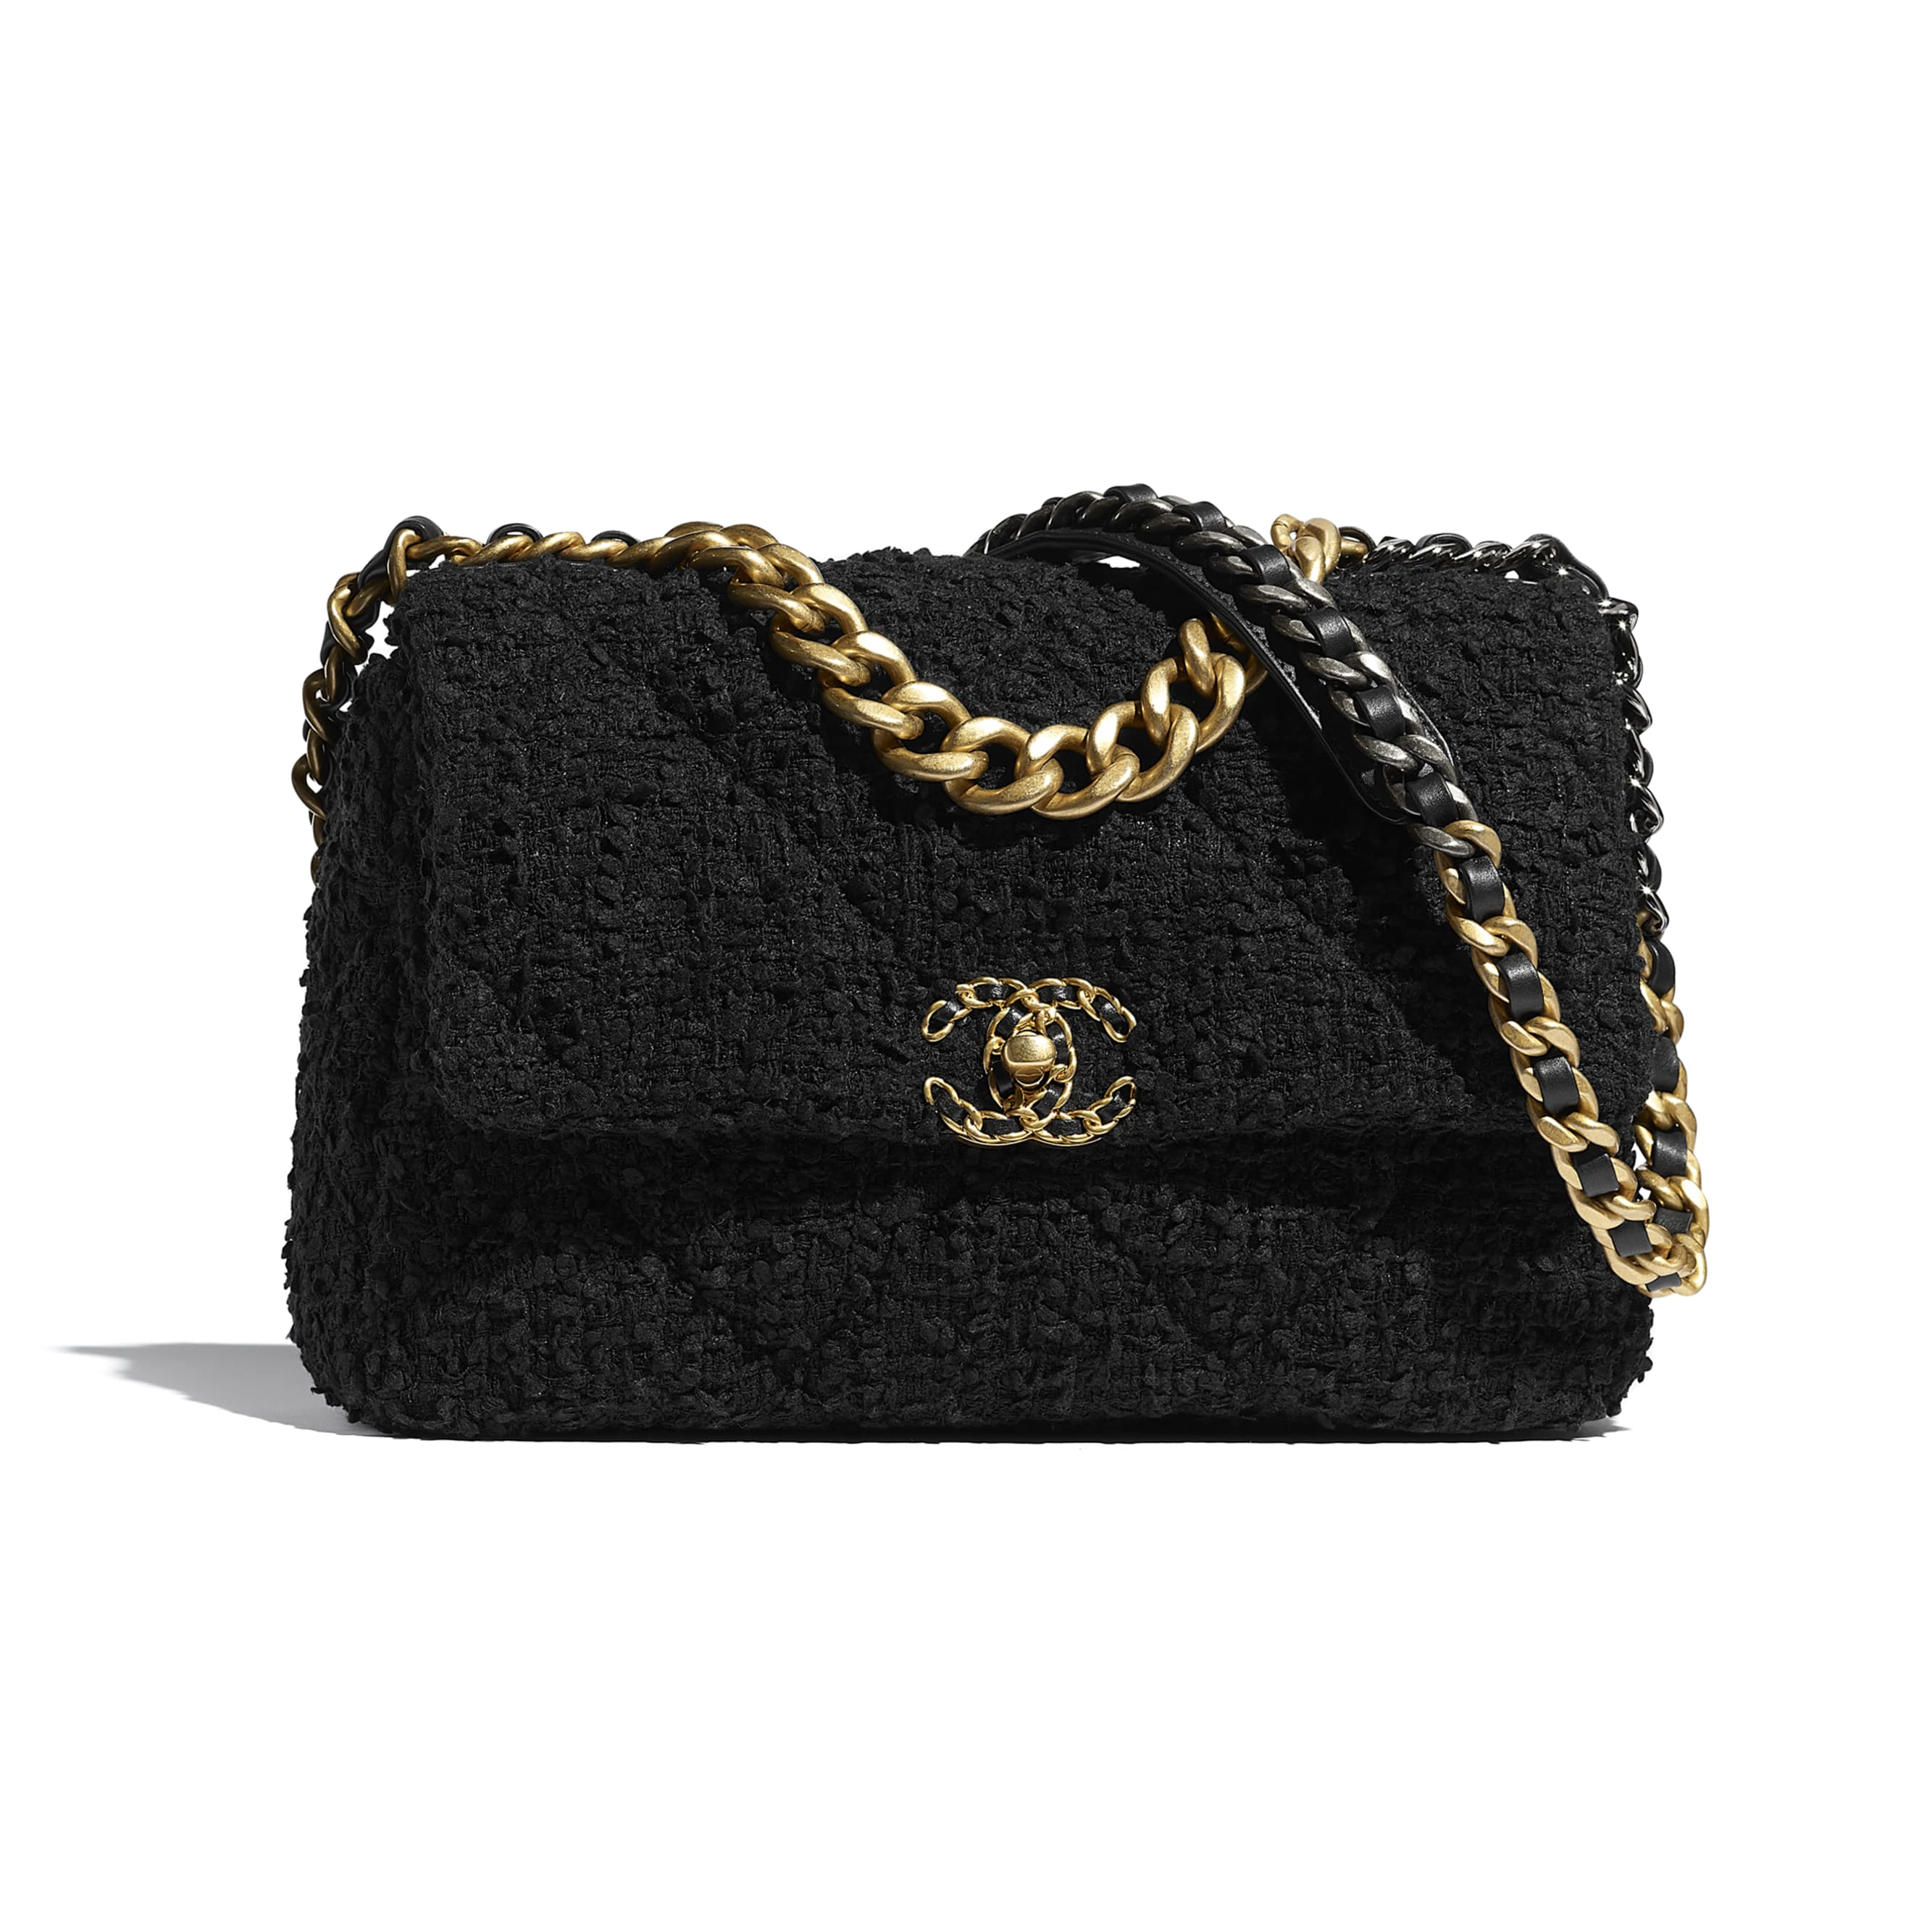 CHANEL 19 Large Flap Bag - Black - Tweed, Gold-Tone, Silver-Tone & Ruthenium-Finish Metal - CHANEL - Default view - see standard sized version